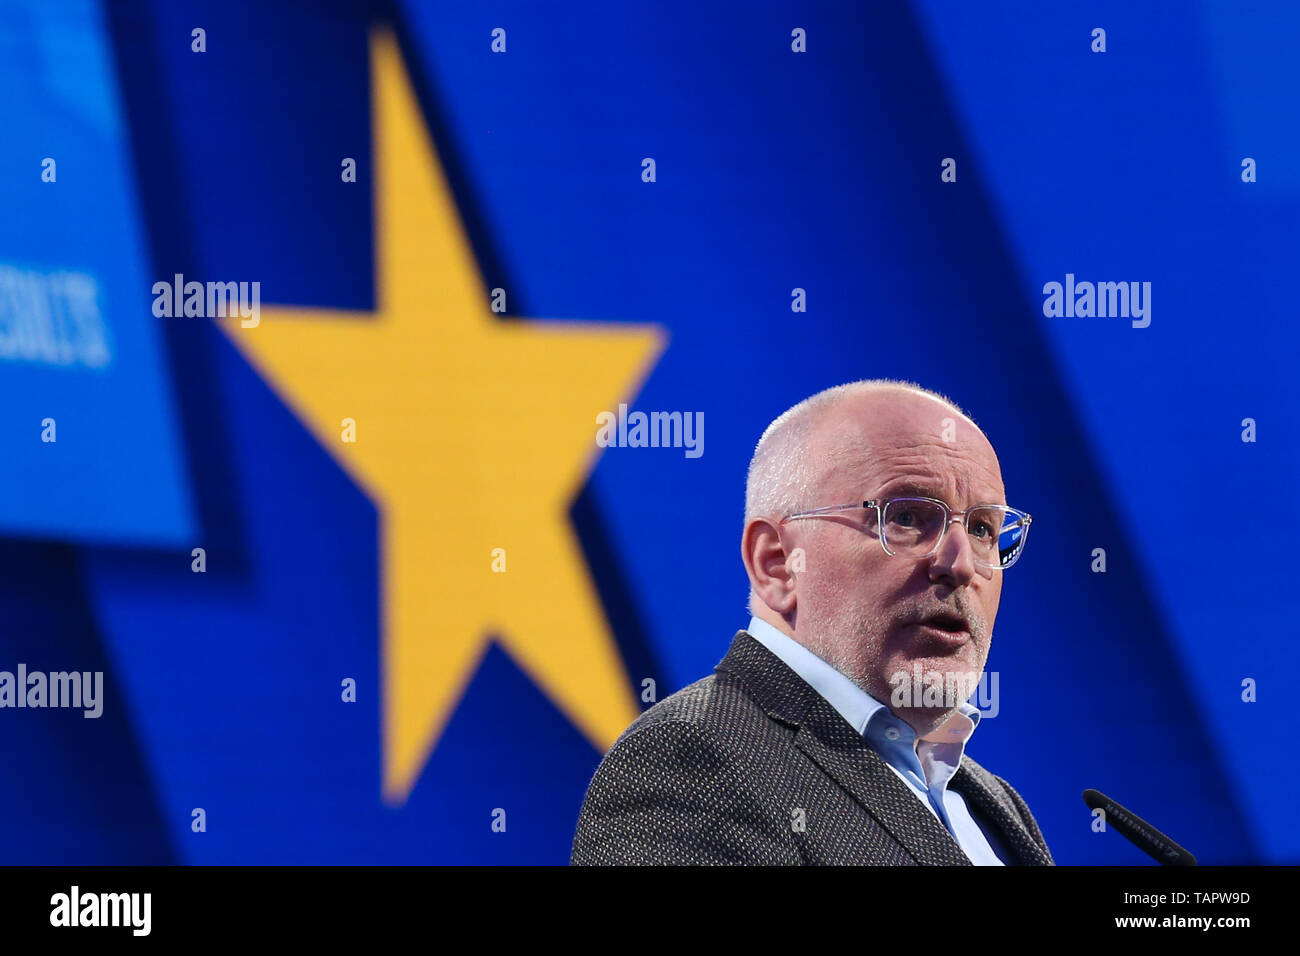 Brussels, Belgium. 27th May 2019. Frans Timmermans, vice-president of the European Commission and lead candidate of the European social-democrats, speaks at the European Parliament in Brussels, Belgium, May 27, 2019. Voters in Germany, Lithuania, Cyprus, Bulgaria, Greece and Italy cast their ballots on Sunday in elections to the European Parliament (EP). Credit: Xinhua/Alamy Live News - Stock Image